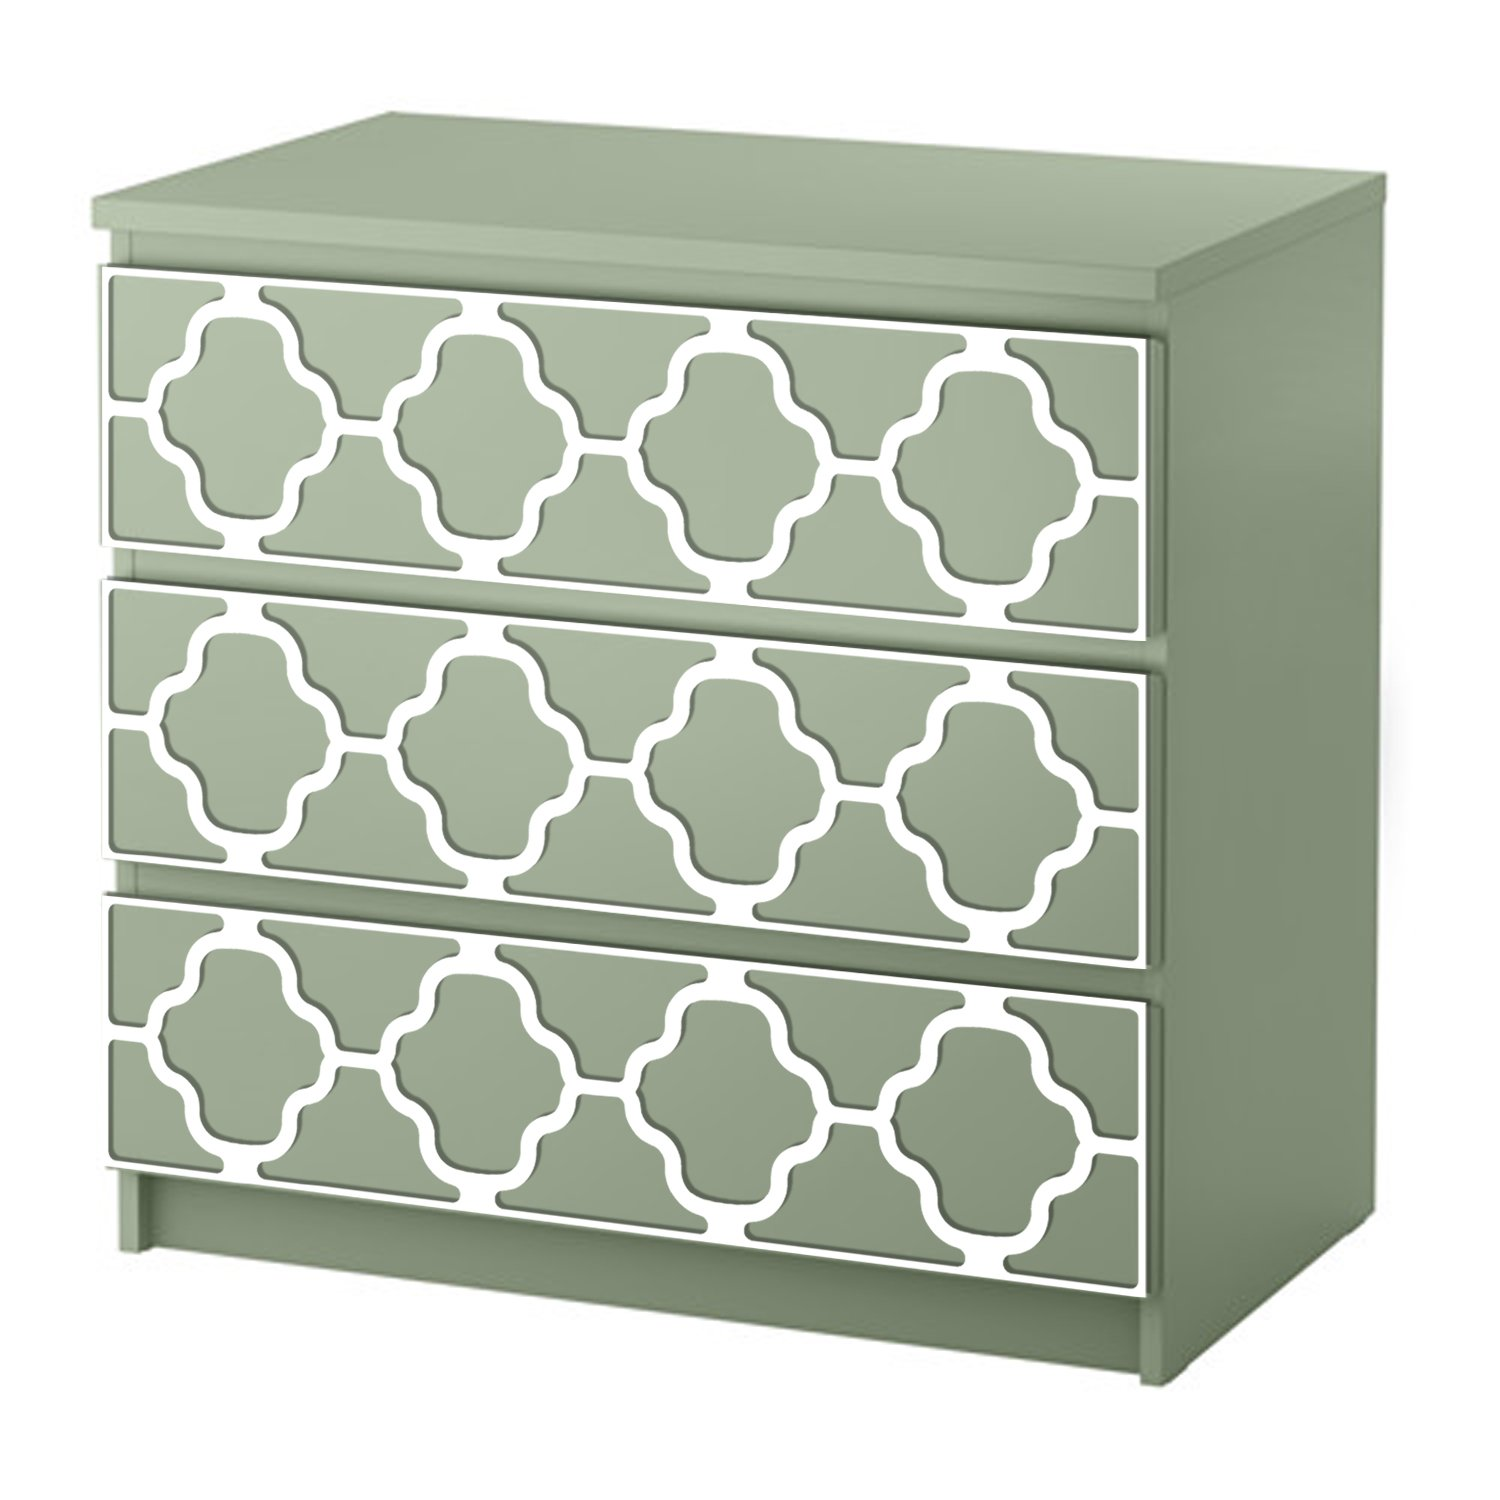 100 Malm Overlays Fretwork Diy Overlays Furniture Appliques Makeover Lux Overlay Panels